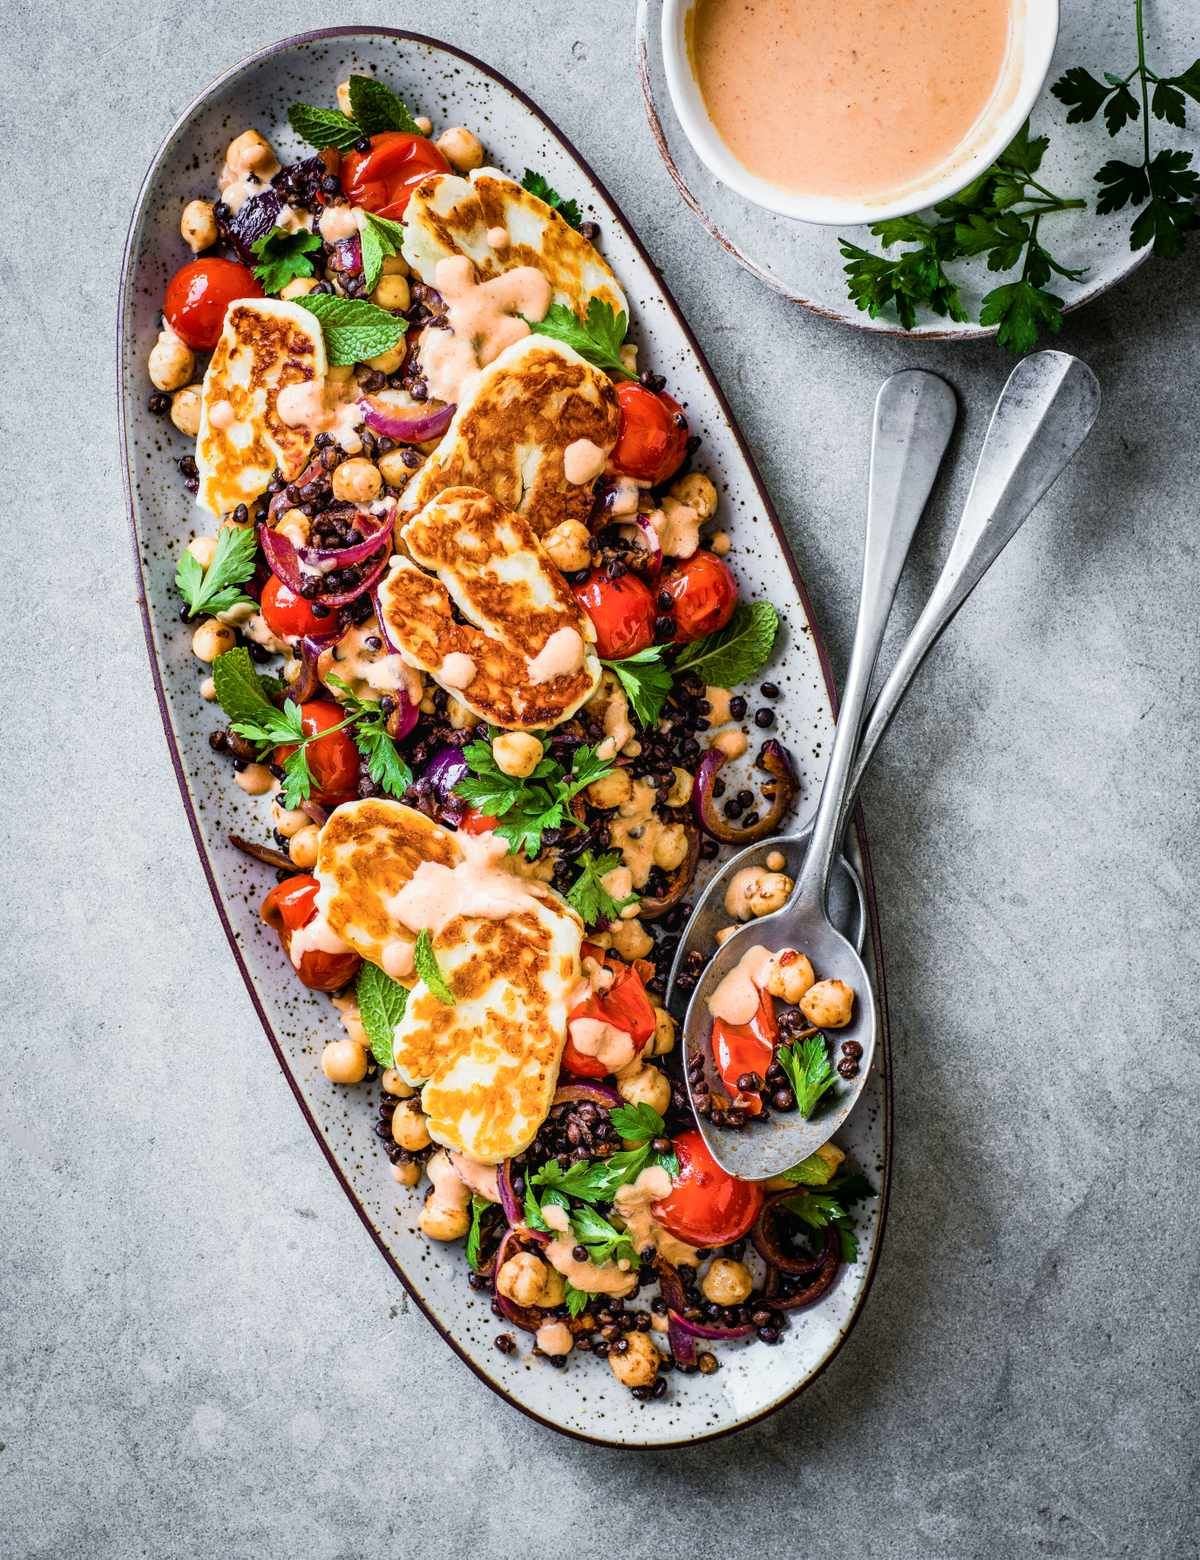 Image result for Spiced lentil and chickpea salad with halloumi